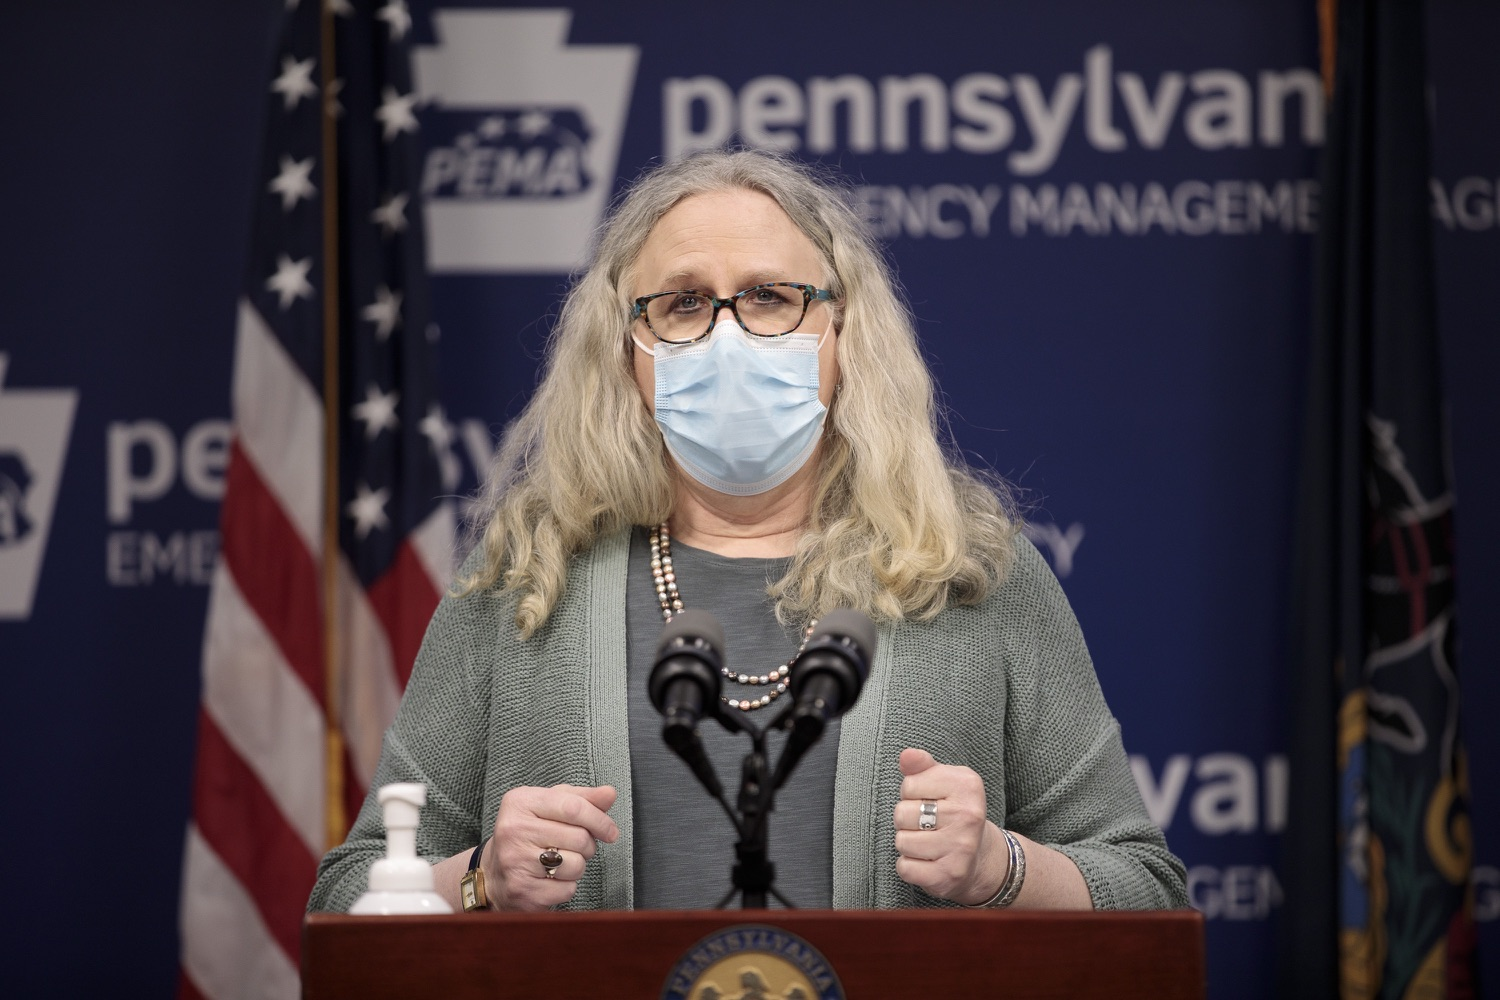 "<a href=""https://filesource.wostreaming.net/commonwealthofpa/photo/18472_gov_vaccine_dz_11.jpg"" target=""_blank"">⇣ Download Photo<br></a>Secretary of Health Dr. Rachel Levine speaks at the press conference.  The commonwealths COVID-19 vaccination distribution plan was designed to be fluid and flexible to meet guidance and recommendations from the federal government. Today, Governor Tom Wolf and Secretary of Health Dr. Rachel Levine announced the fourth version of the plan, detailing the updates and how the state is working to ensure safe, swift implementation. Harrisburg, PA  January 8, 2021"